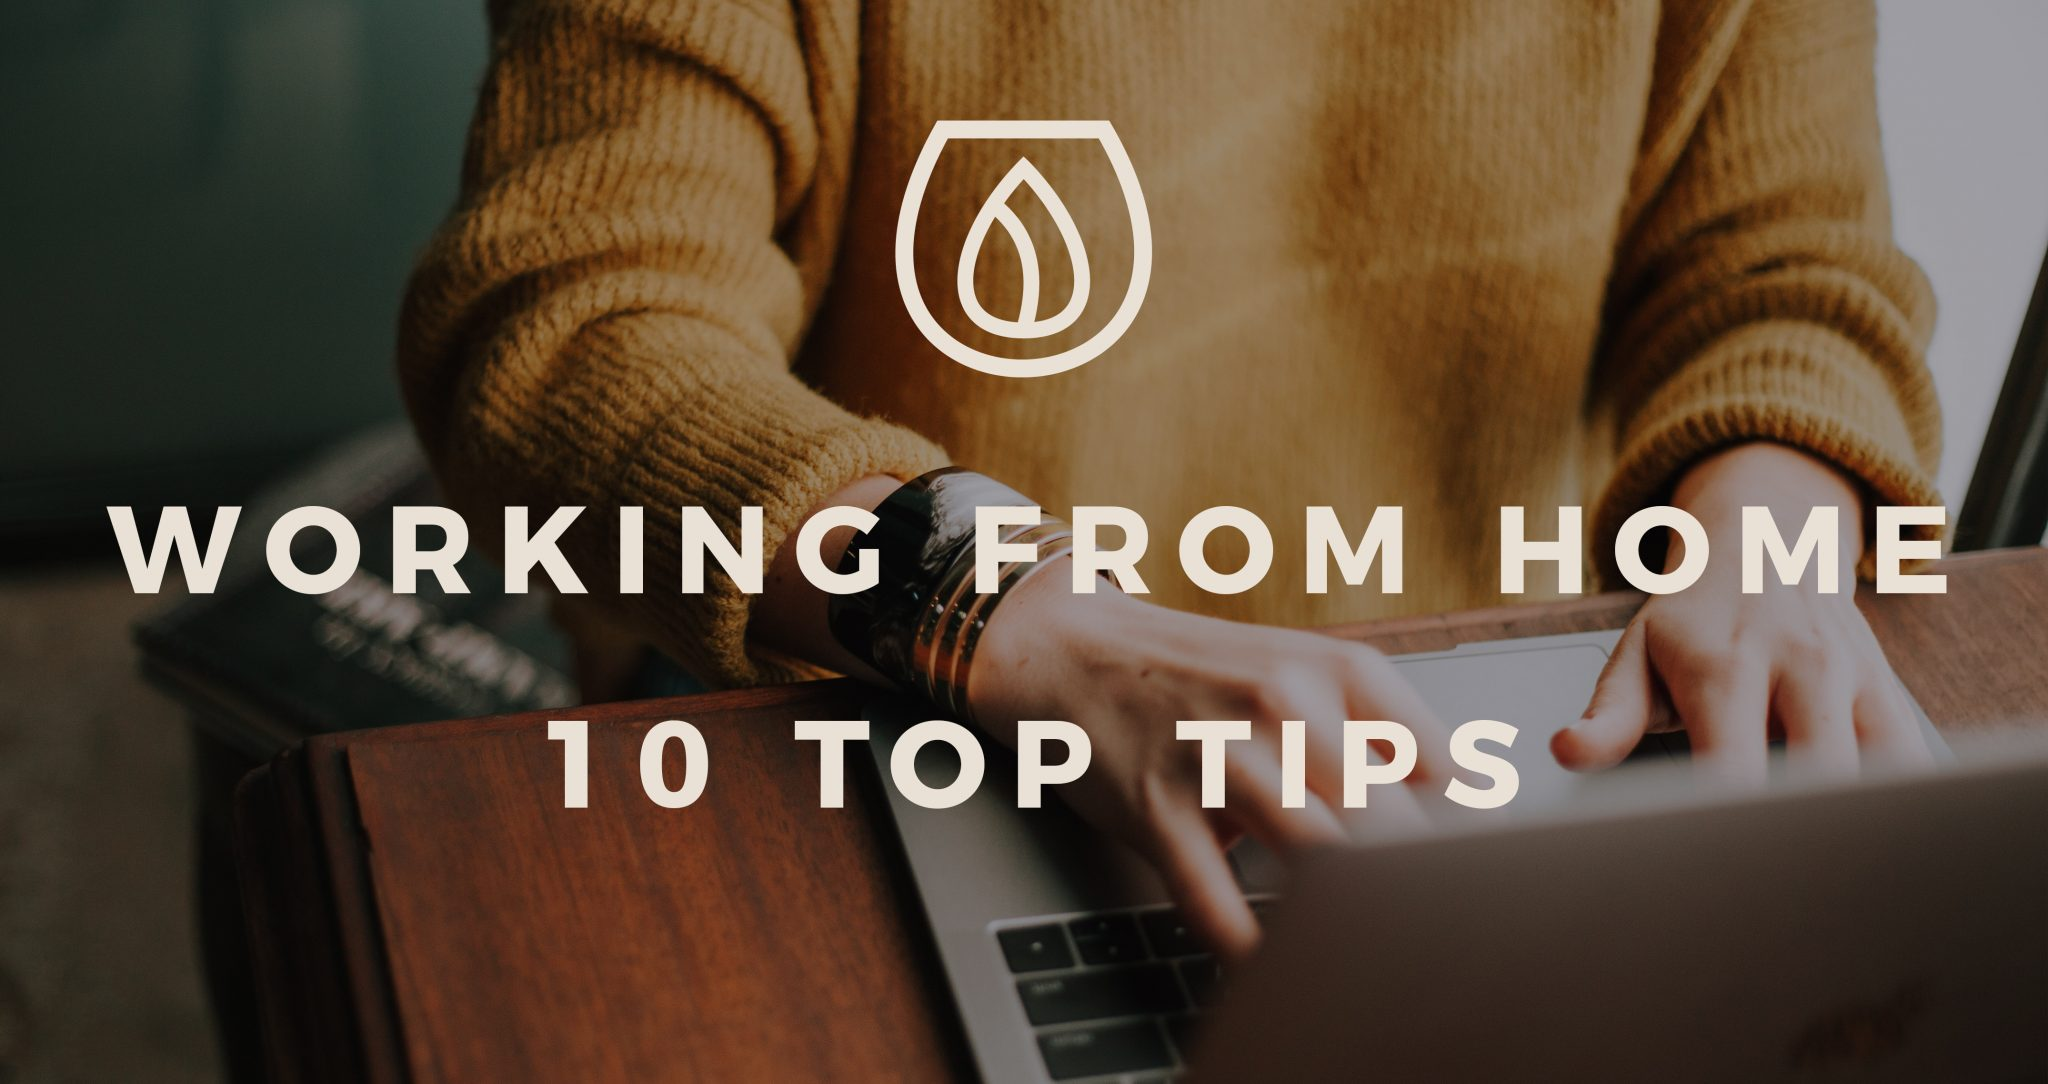 Working from home 10 top tips from YesMore drinks marketing agency